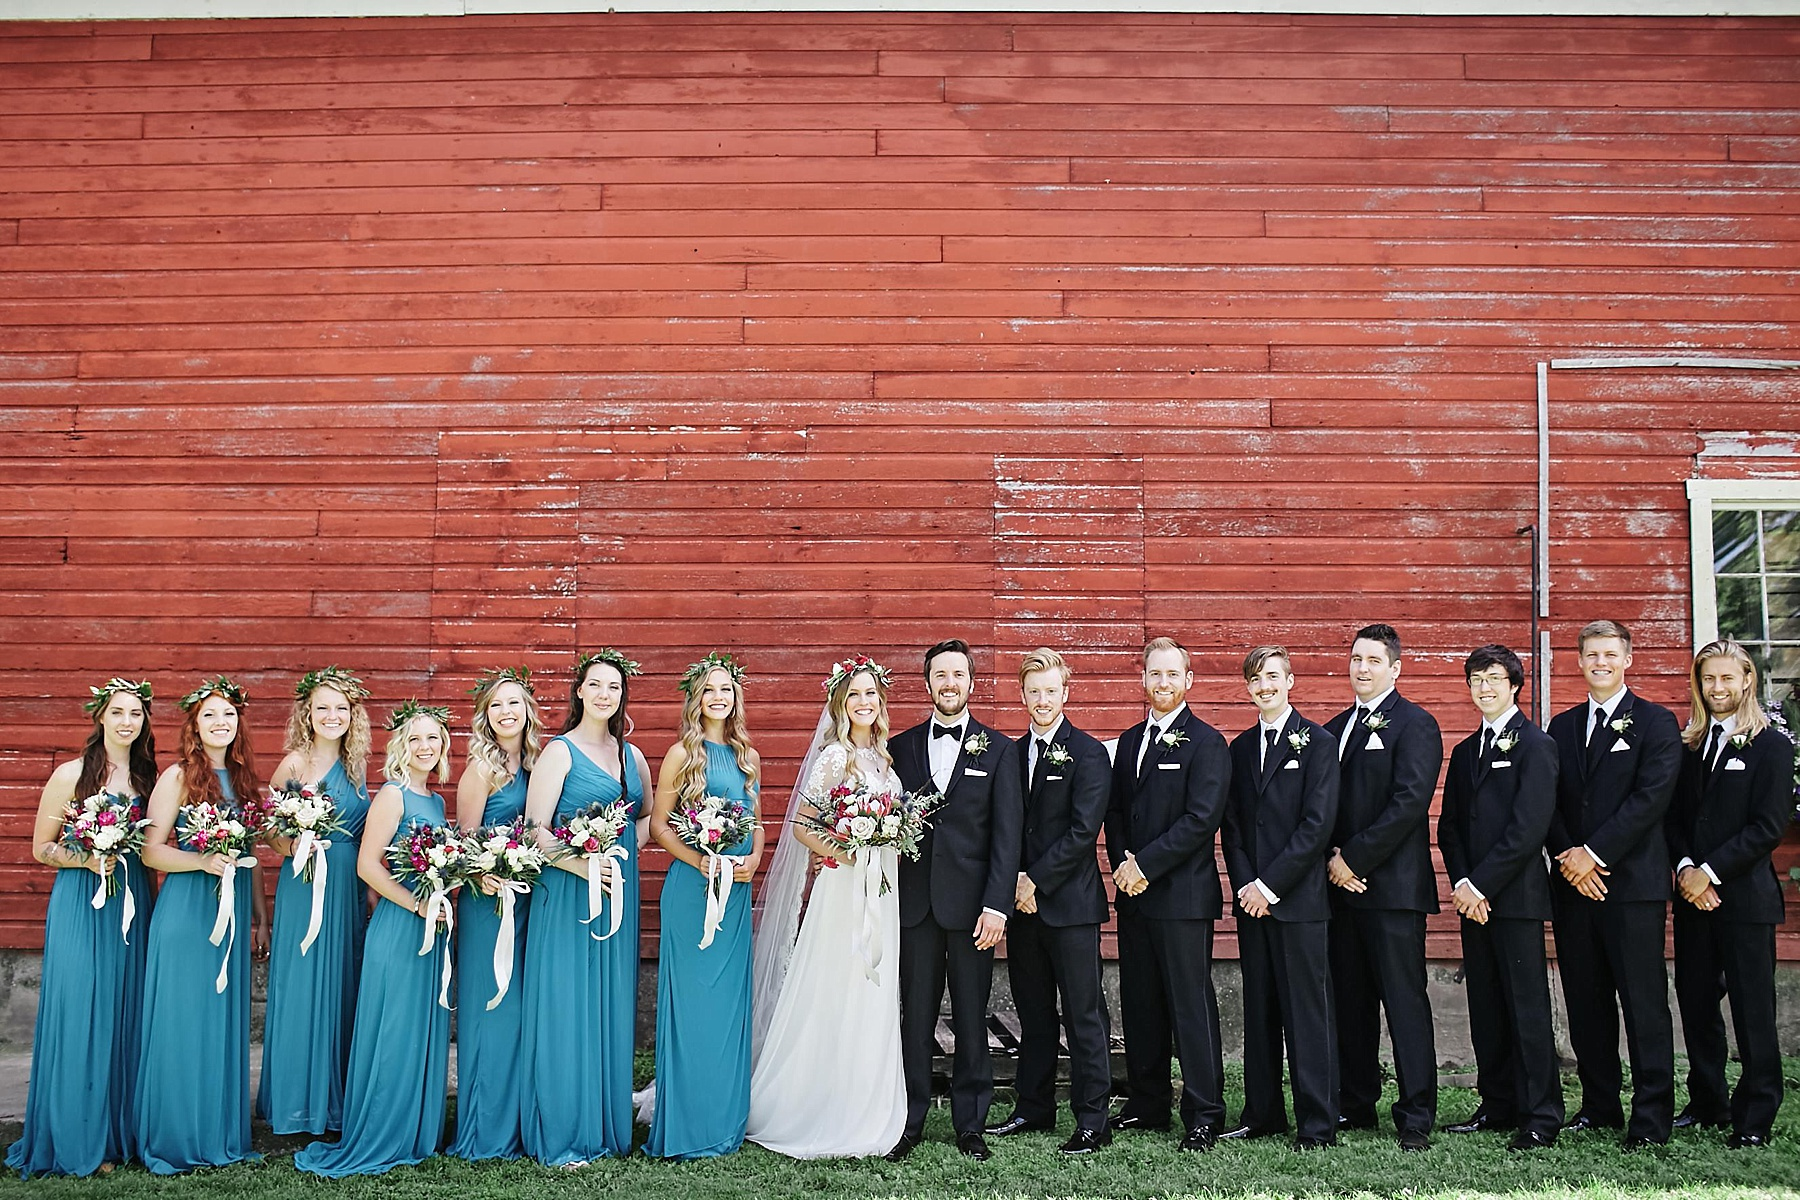 Fairhaven-Farm-South-Haven-Minnesota-Barn-Outdoor-Wedding-Josh-Kailey_0963.jpg